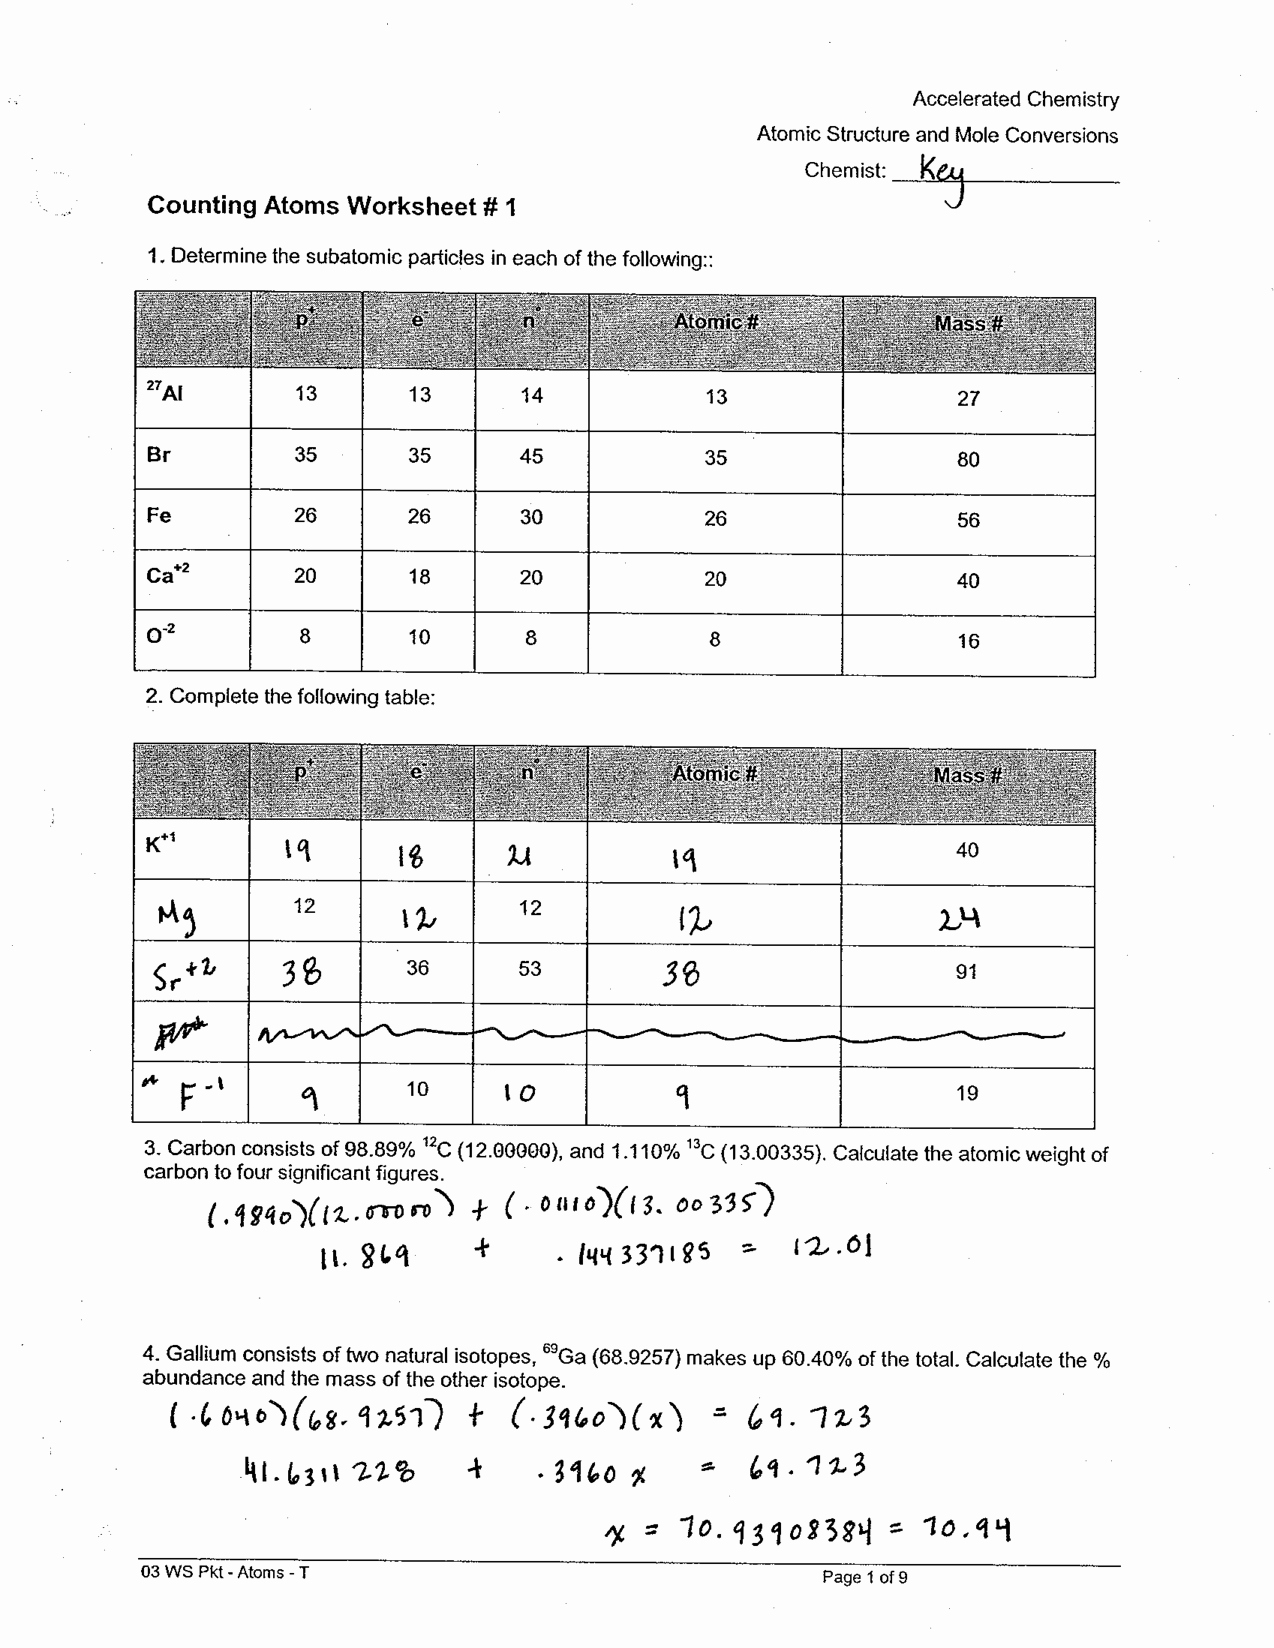 Atoms and isotopes Worksheet Answers Best Of 16 Best Of Molecules and atoms Worksheet Answer Key